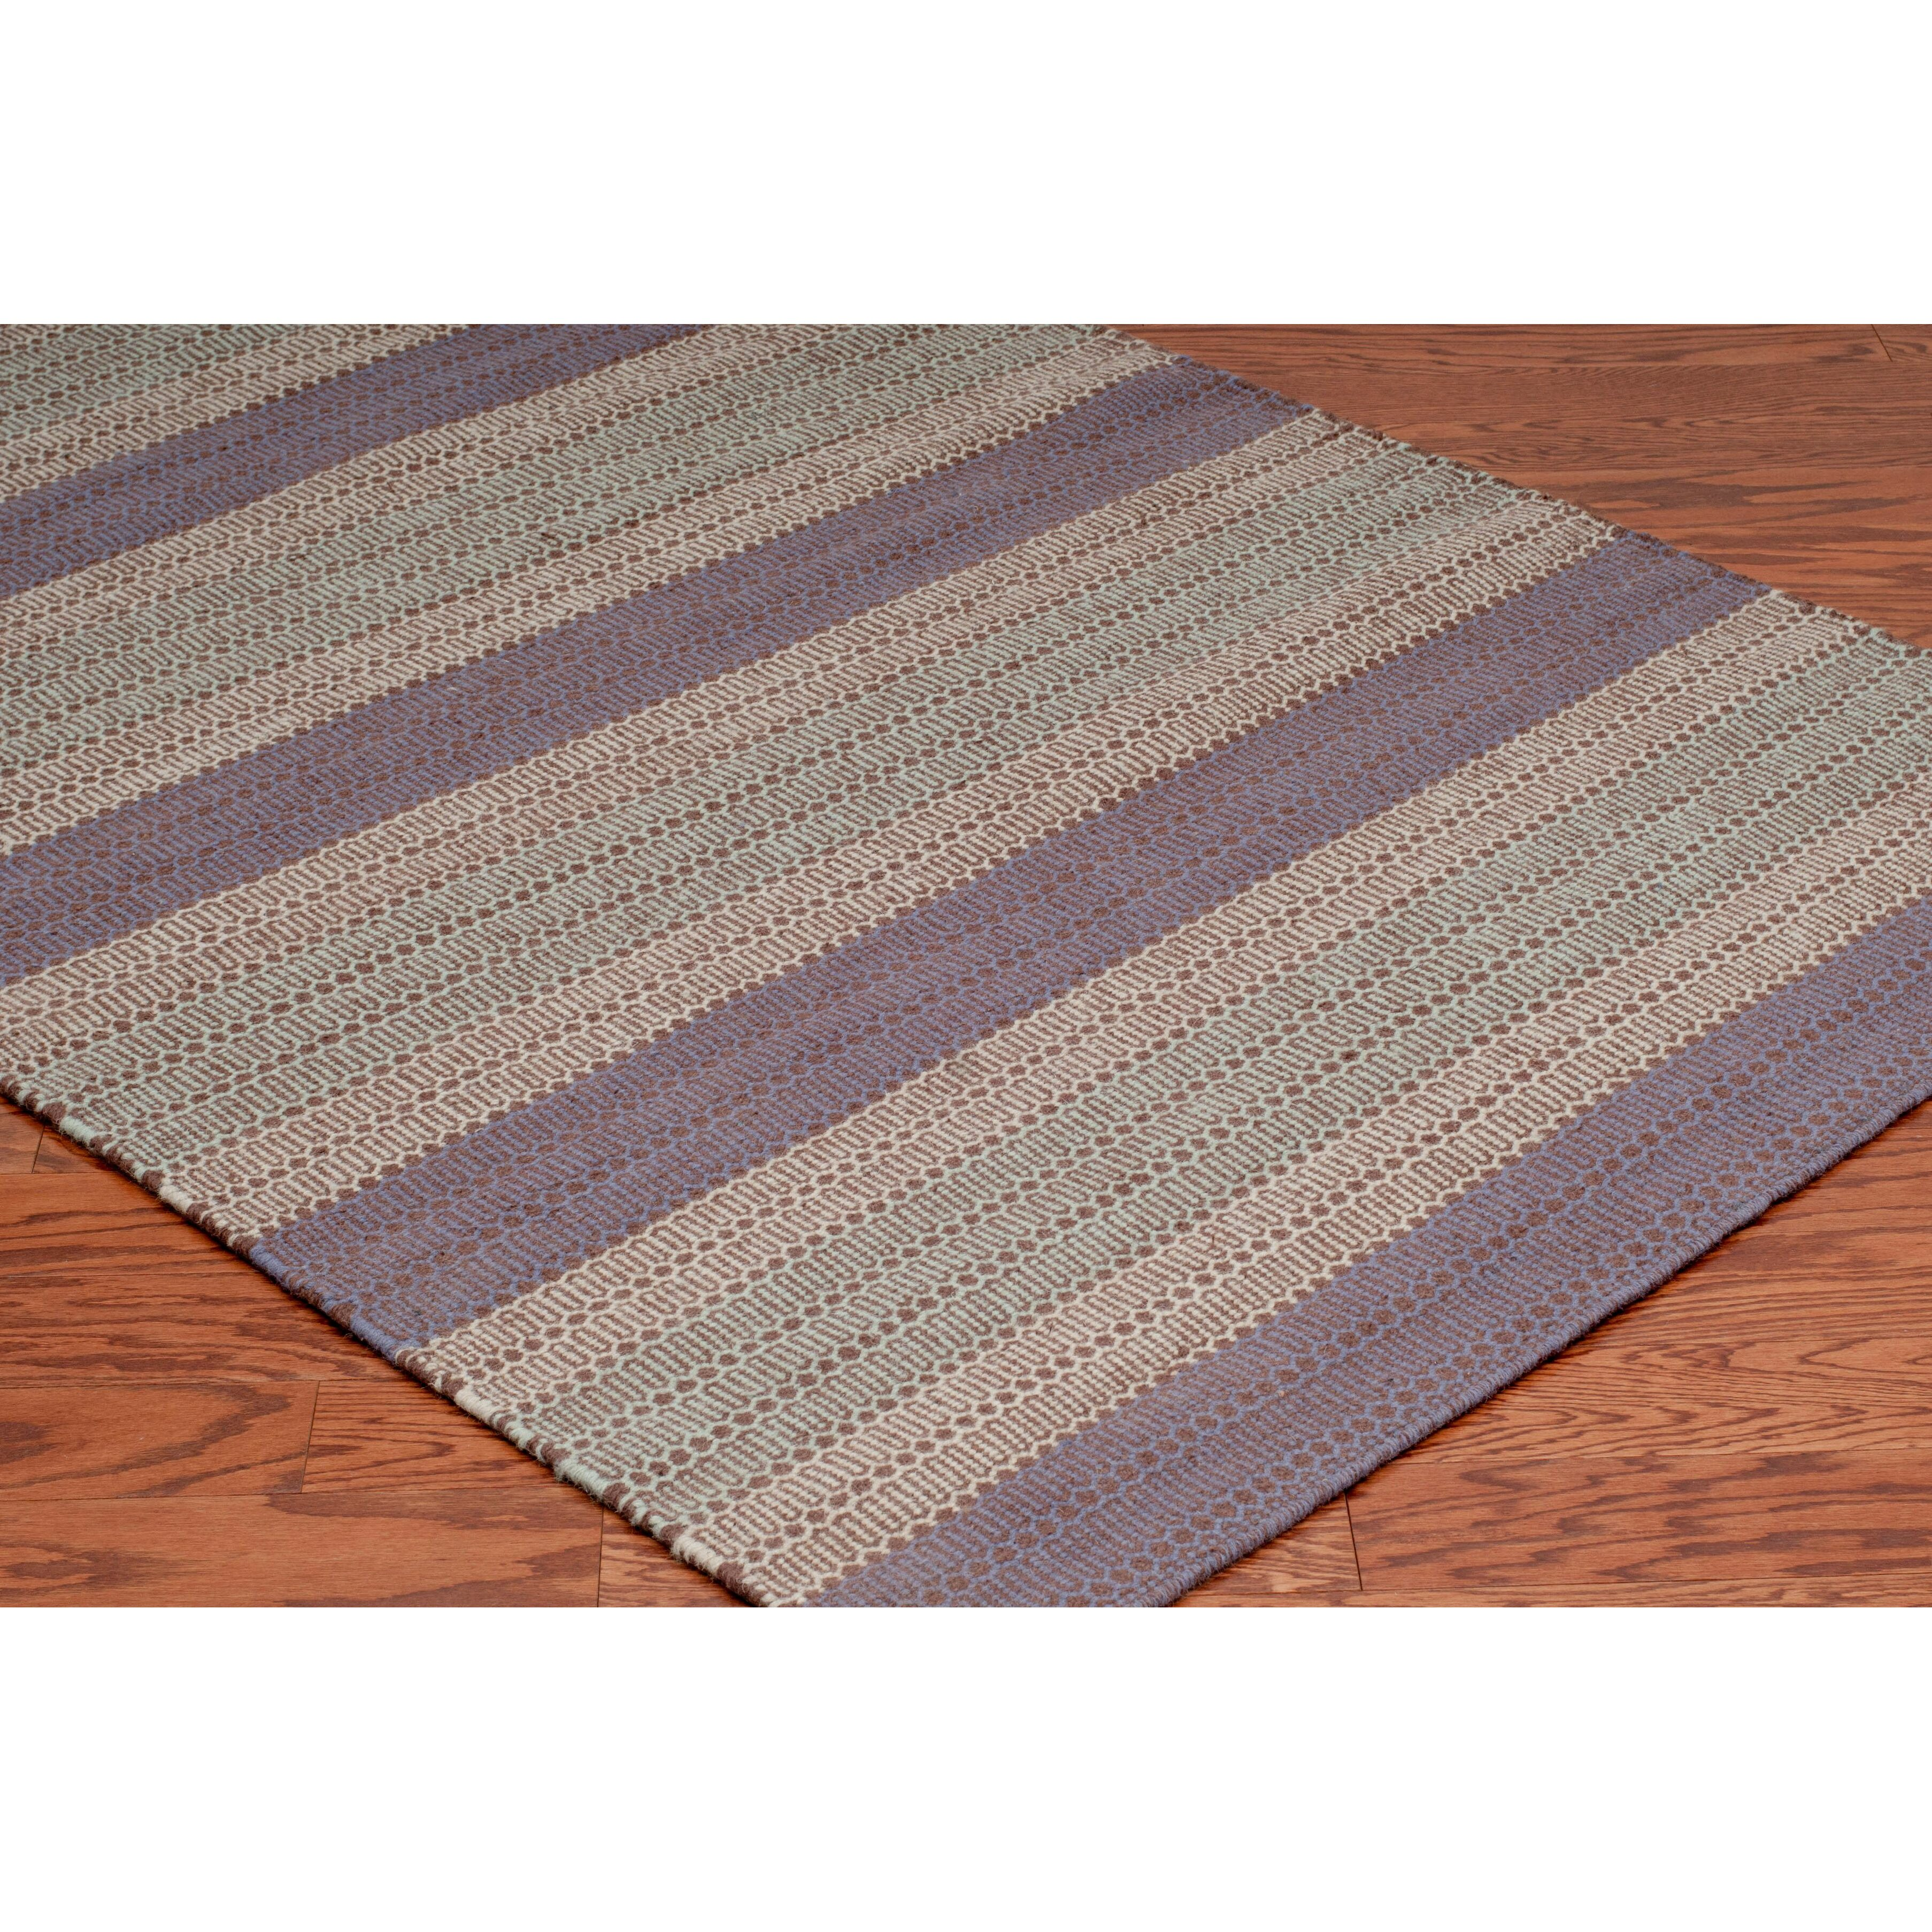 The conestoga trading co hand woven plum area rug for The rug company rugs